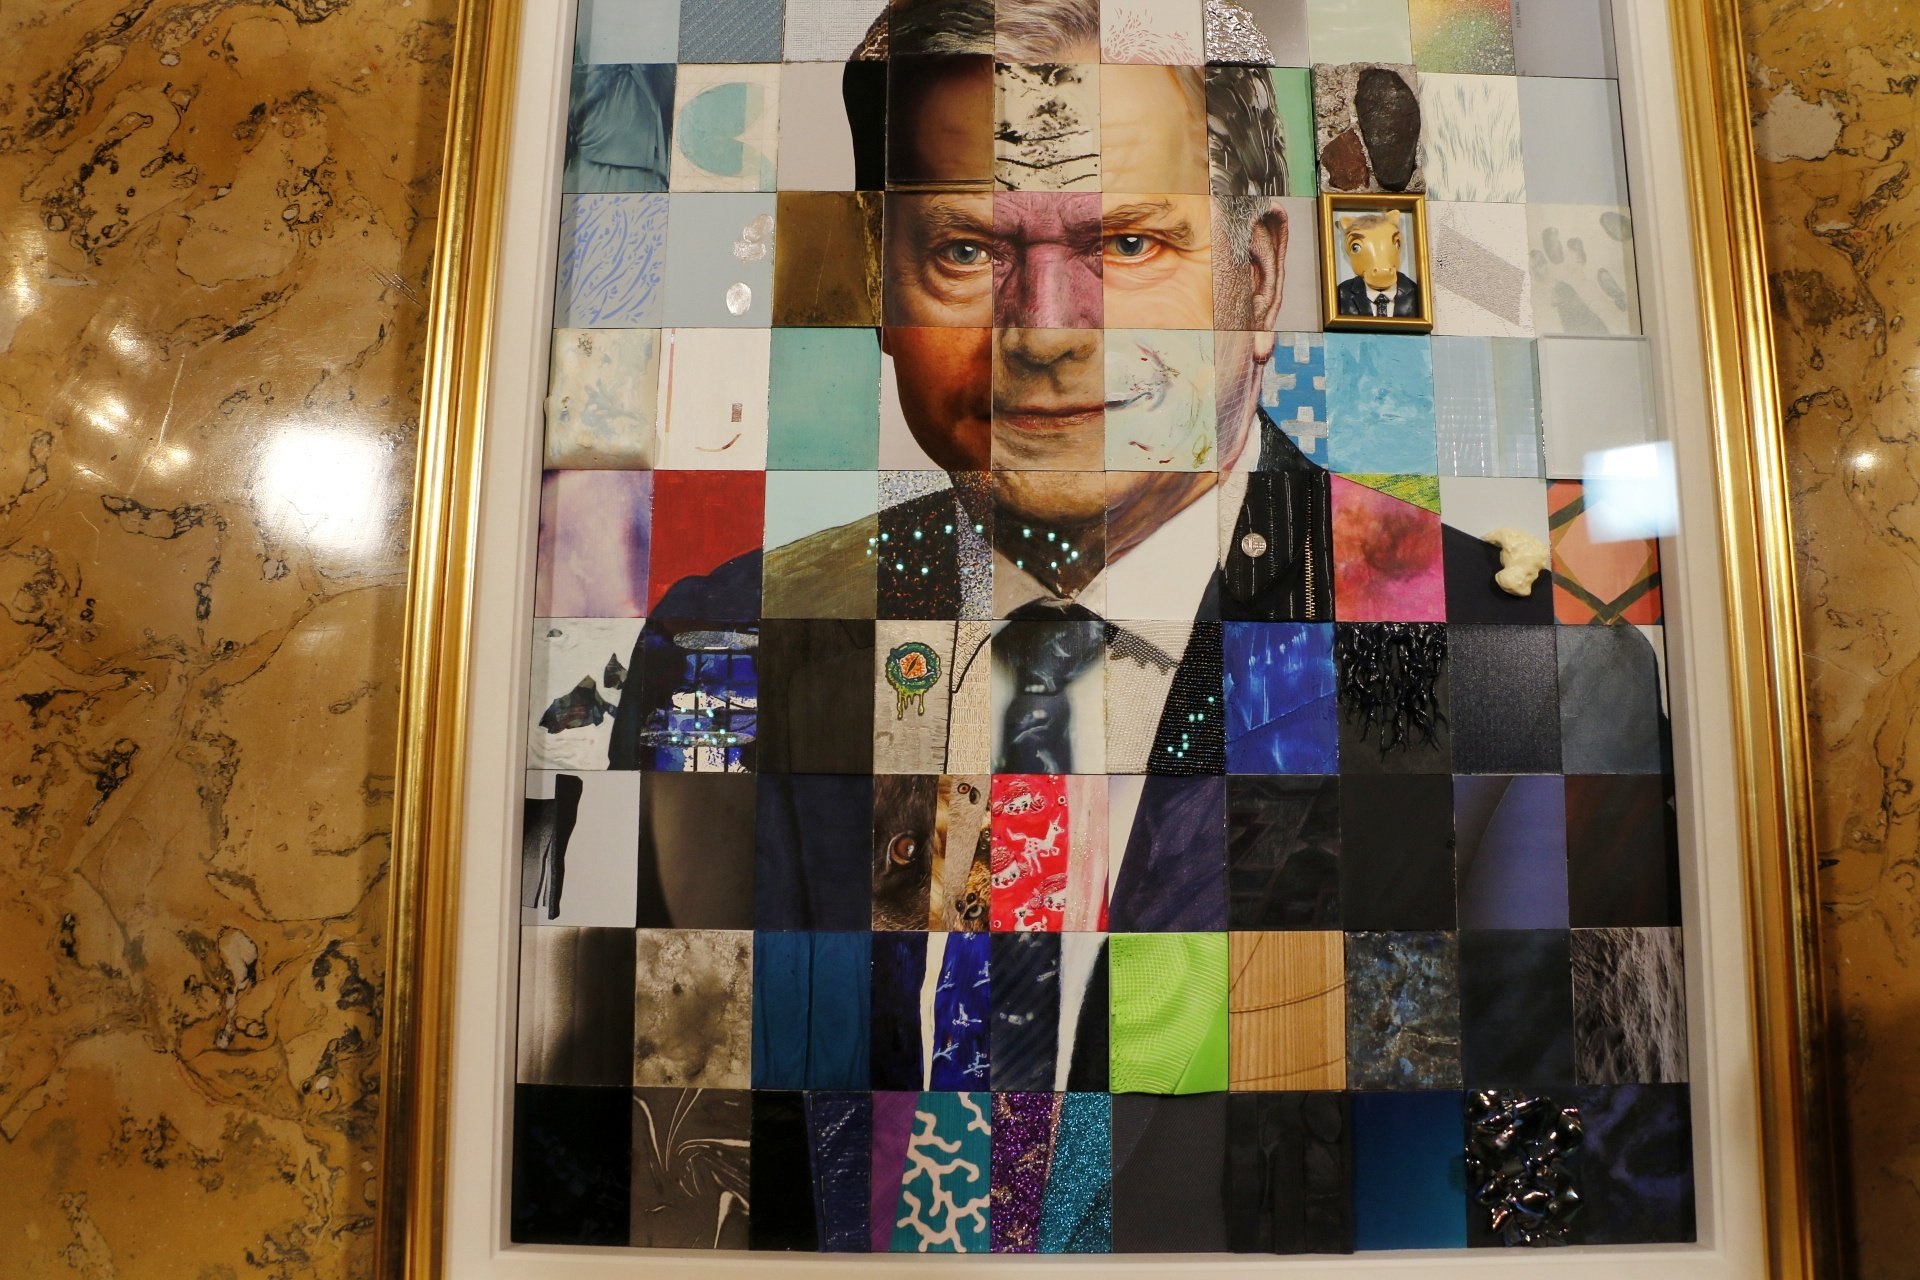 The Portrait of President Sauli Niinistö Is on Display In Ateneum Art Museum